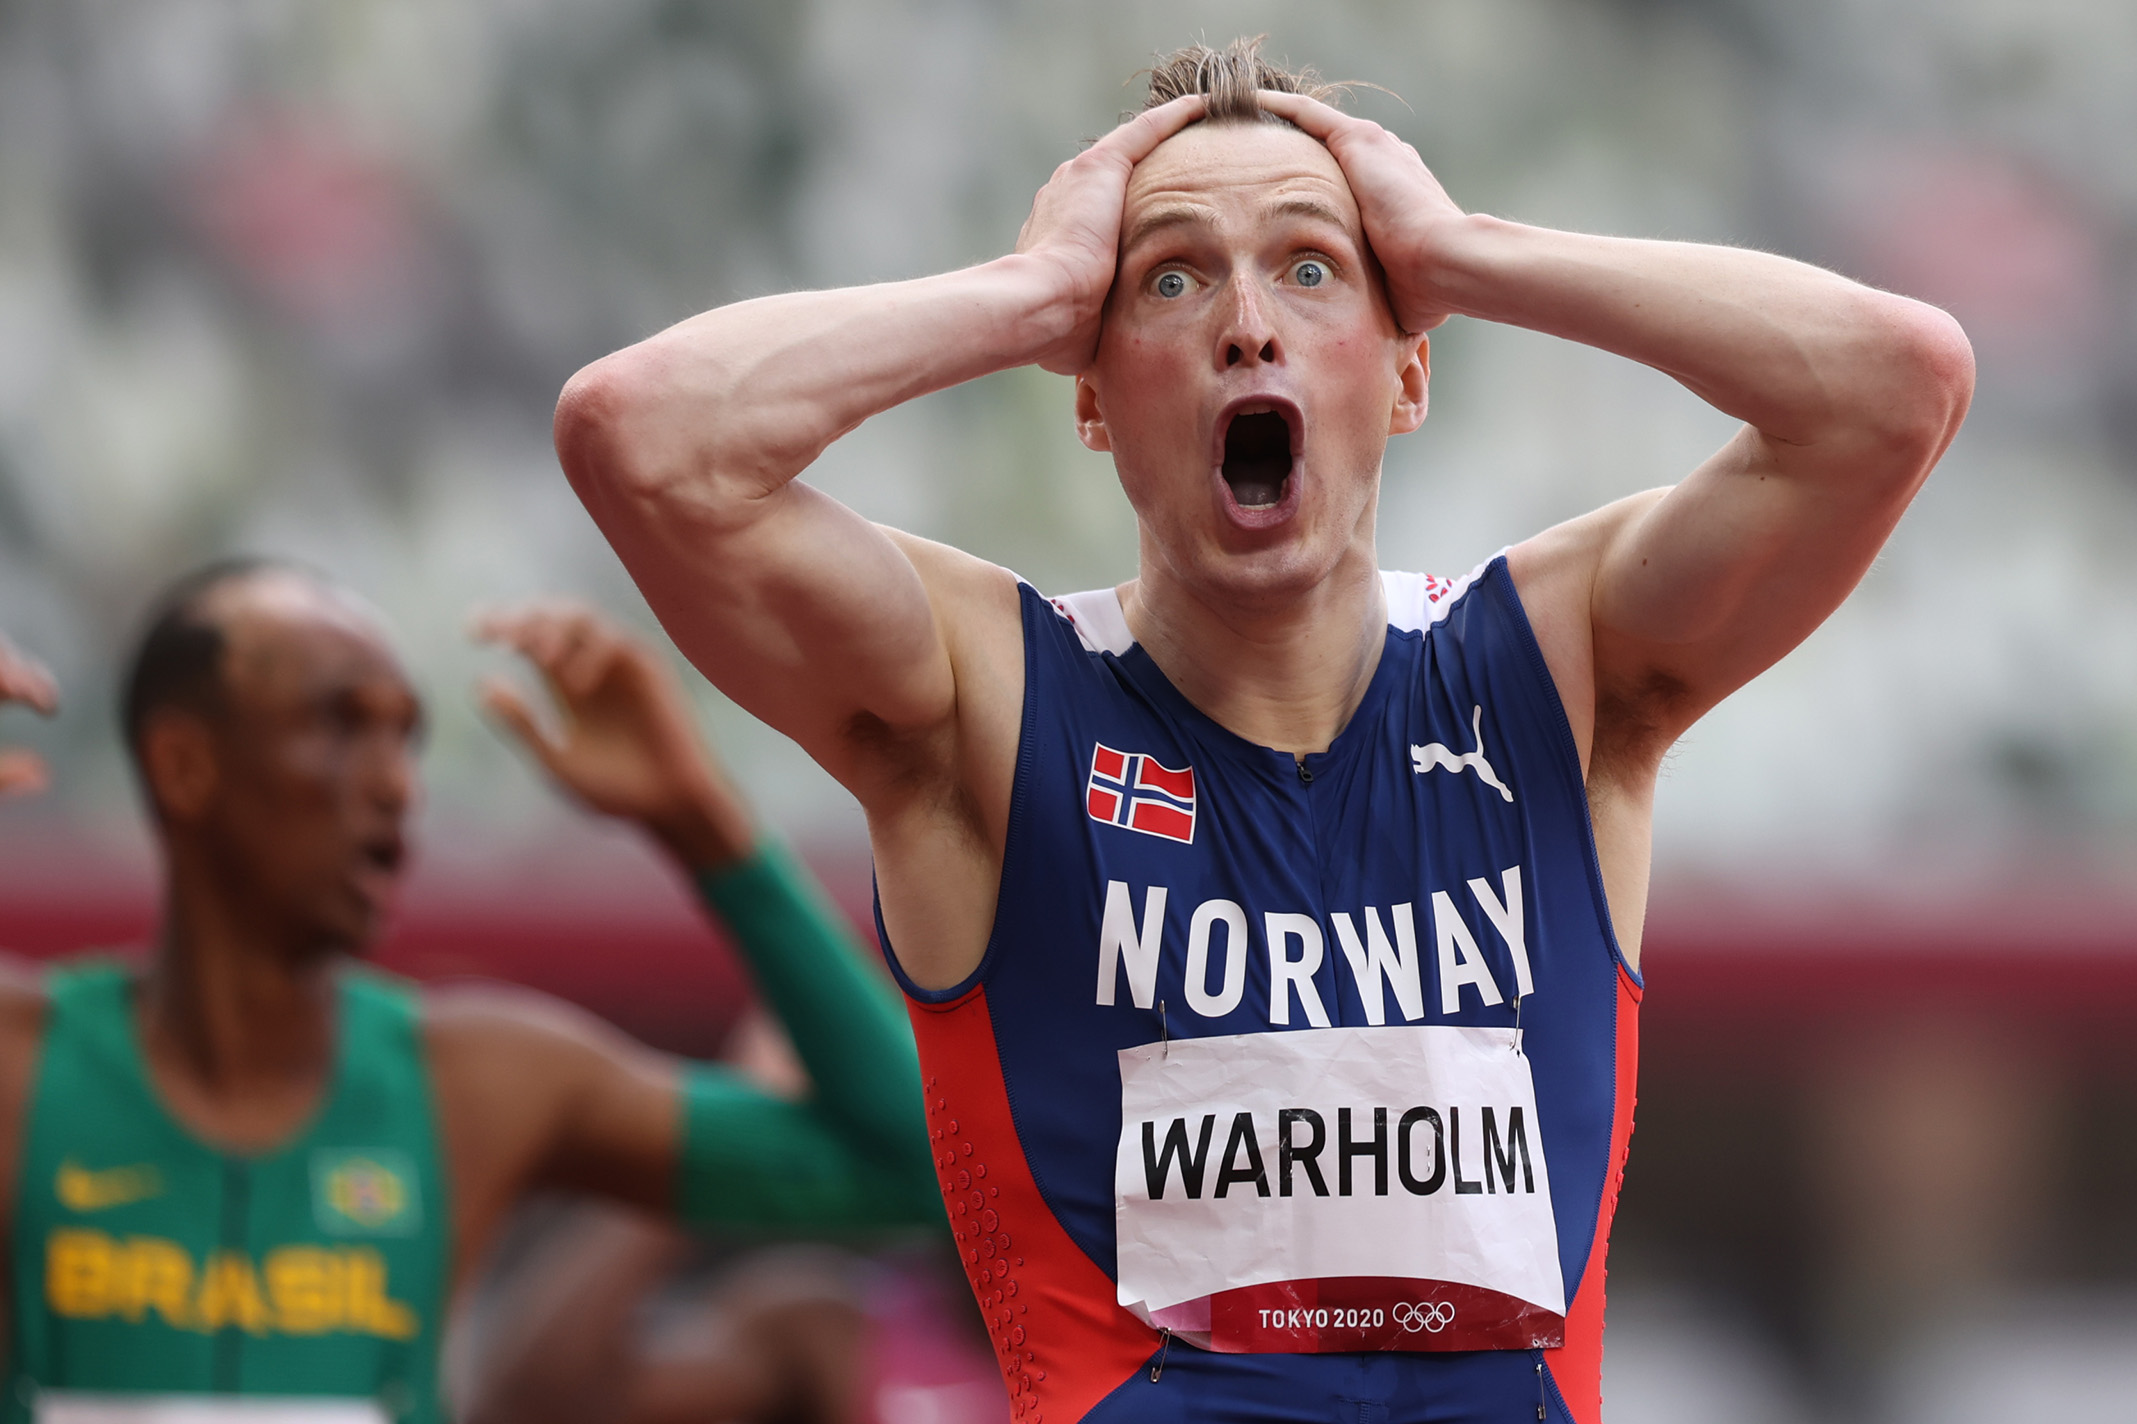 Karsten Warholm of Norway reacts after winning the gold medal and setting a new world record in the Men's 400m Hurdles Final on August 3rd 2021, Tokyo Olympics